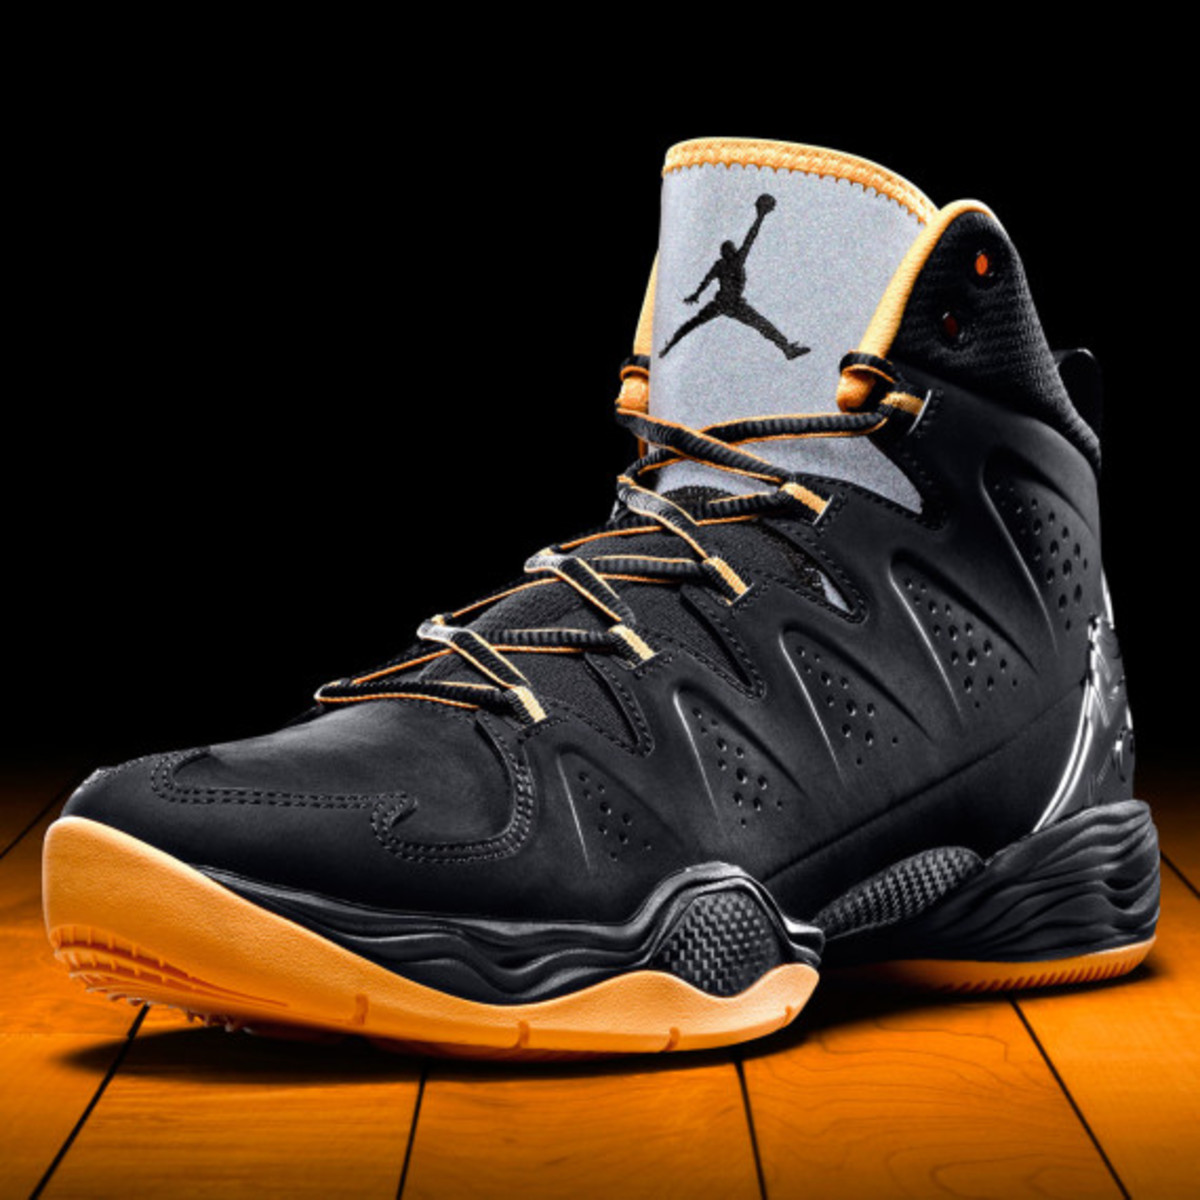 jordan-brand-2014-nba-playoff-pack-17